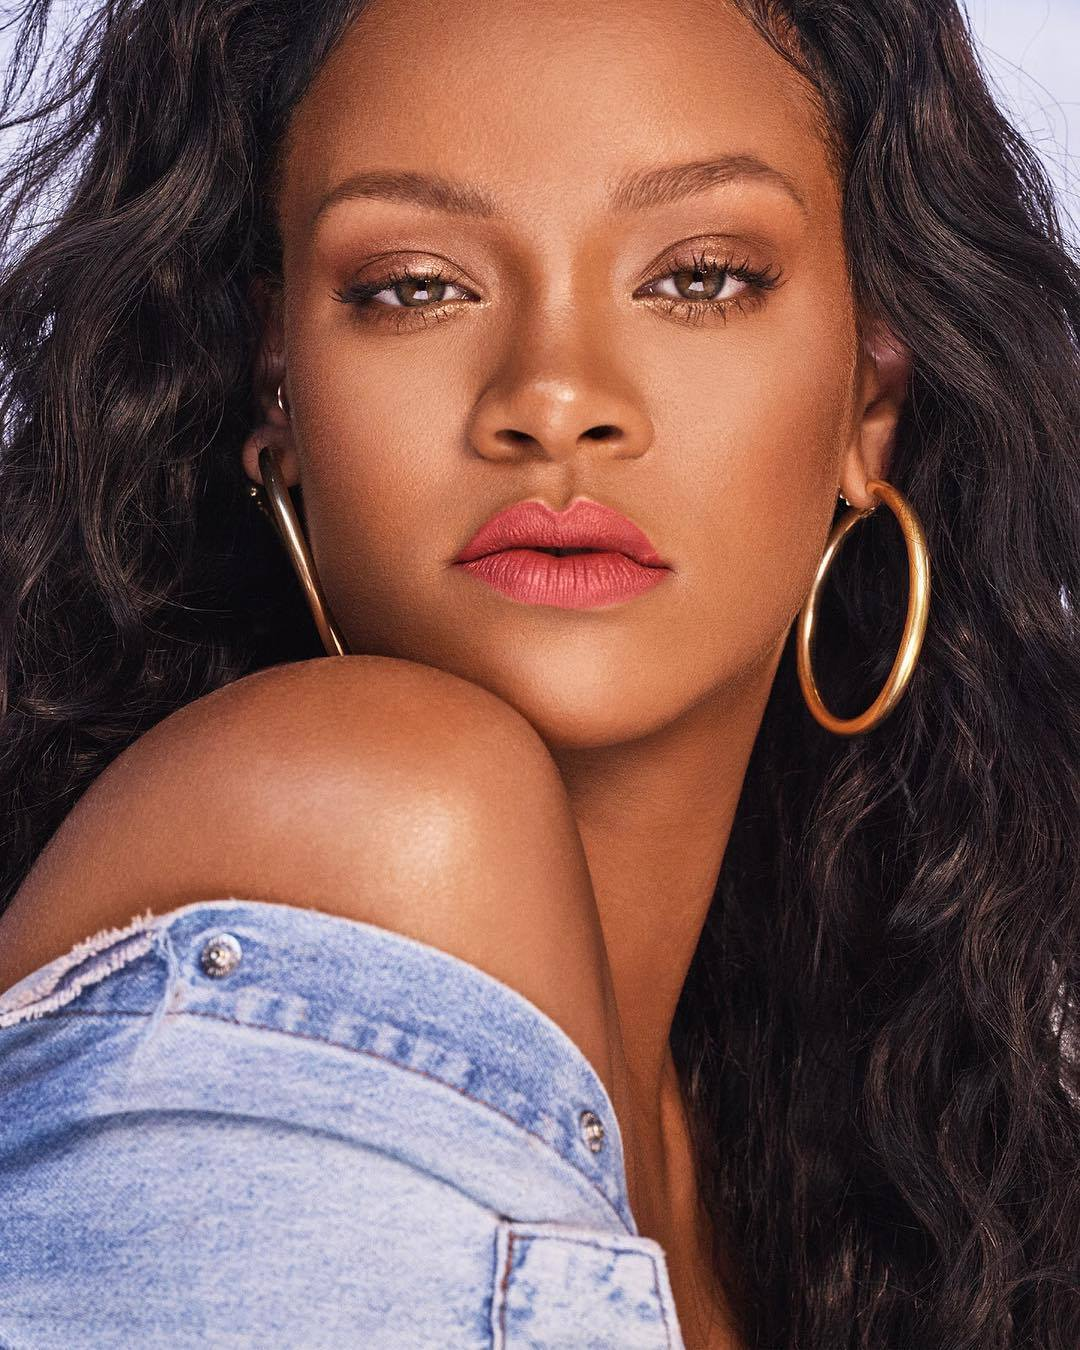 Fenty Beauty | 'Mattemoiselle' Newest Lipstick Shades starring Rihanna